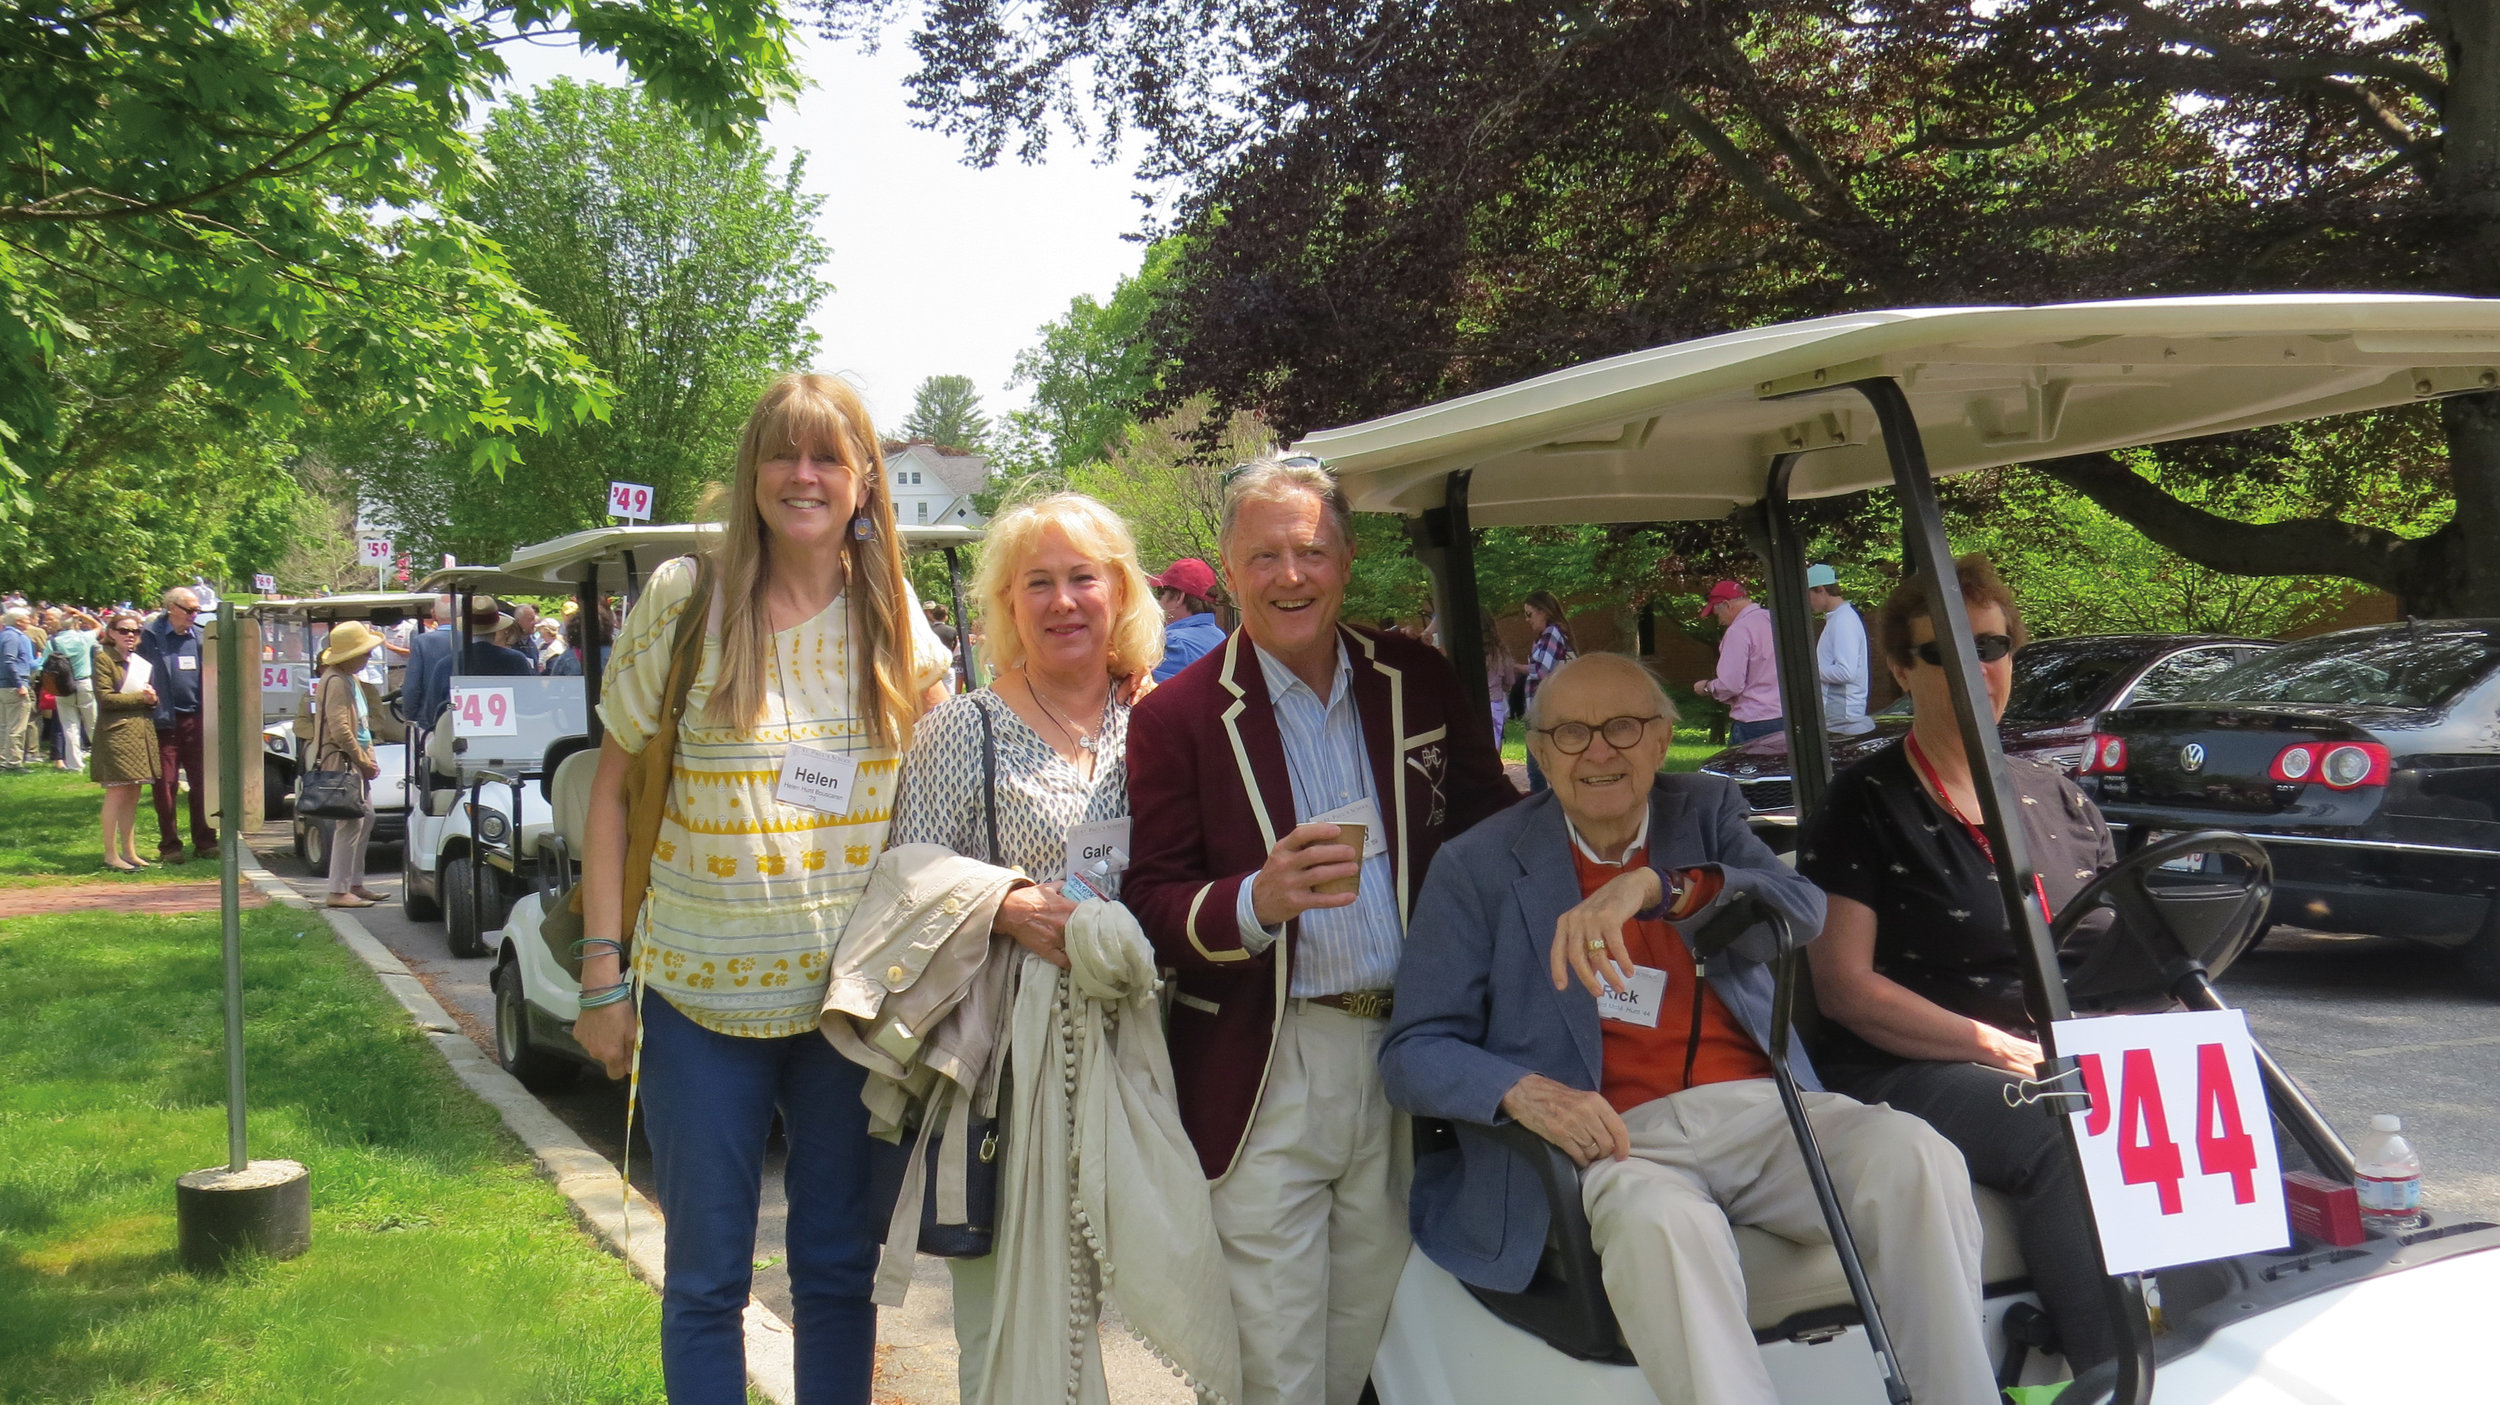 (L. to r.) Helen Bouscaren '75, Gale Hunt, Terry Hunt '69, and Richard Hunt '44.